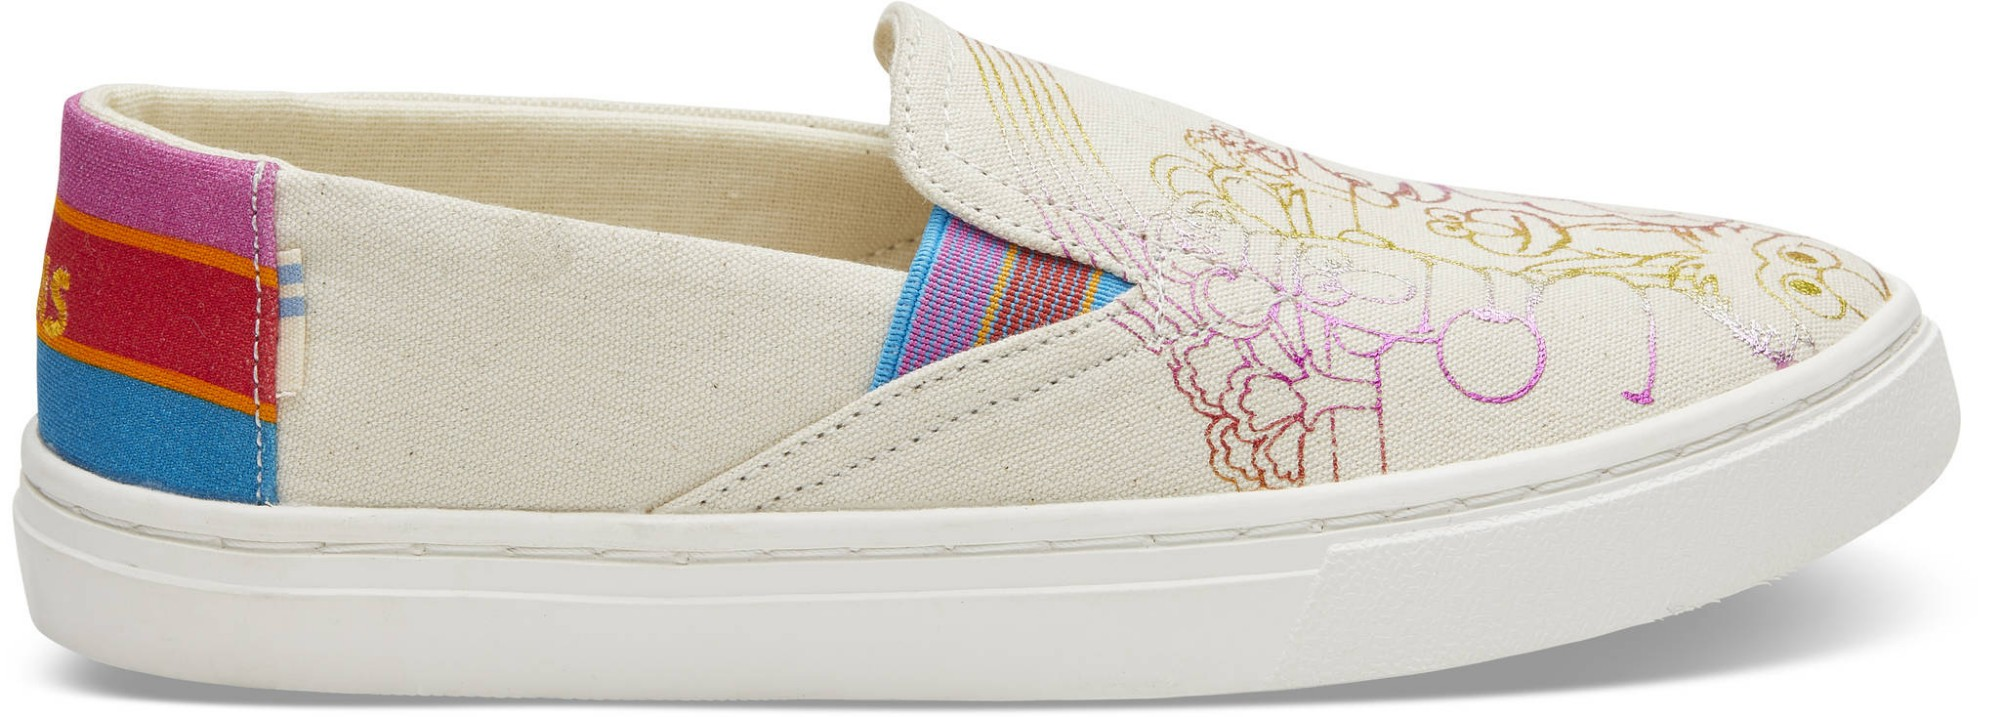 TOMS Sesame Street Foil Junior's Luca Slipon Natural 32,5